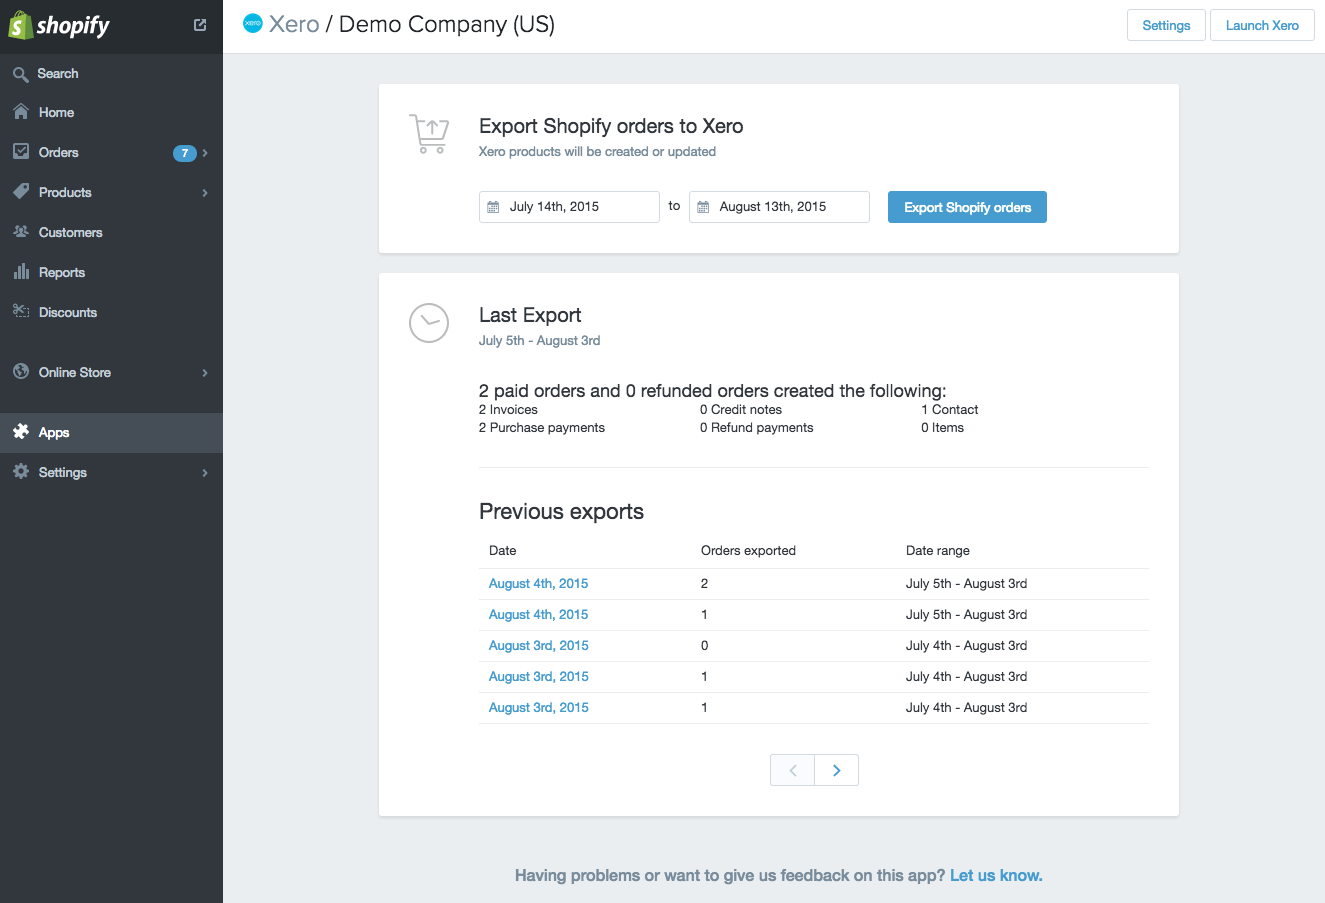 Xero Ecommerce Integration Accounting Software For Small Business - Shopify create invoice for service business